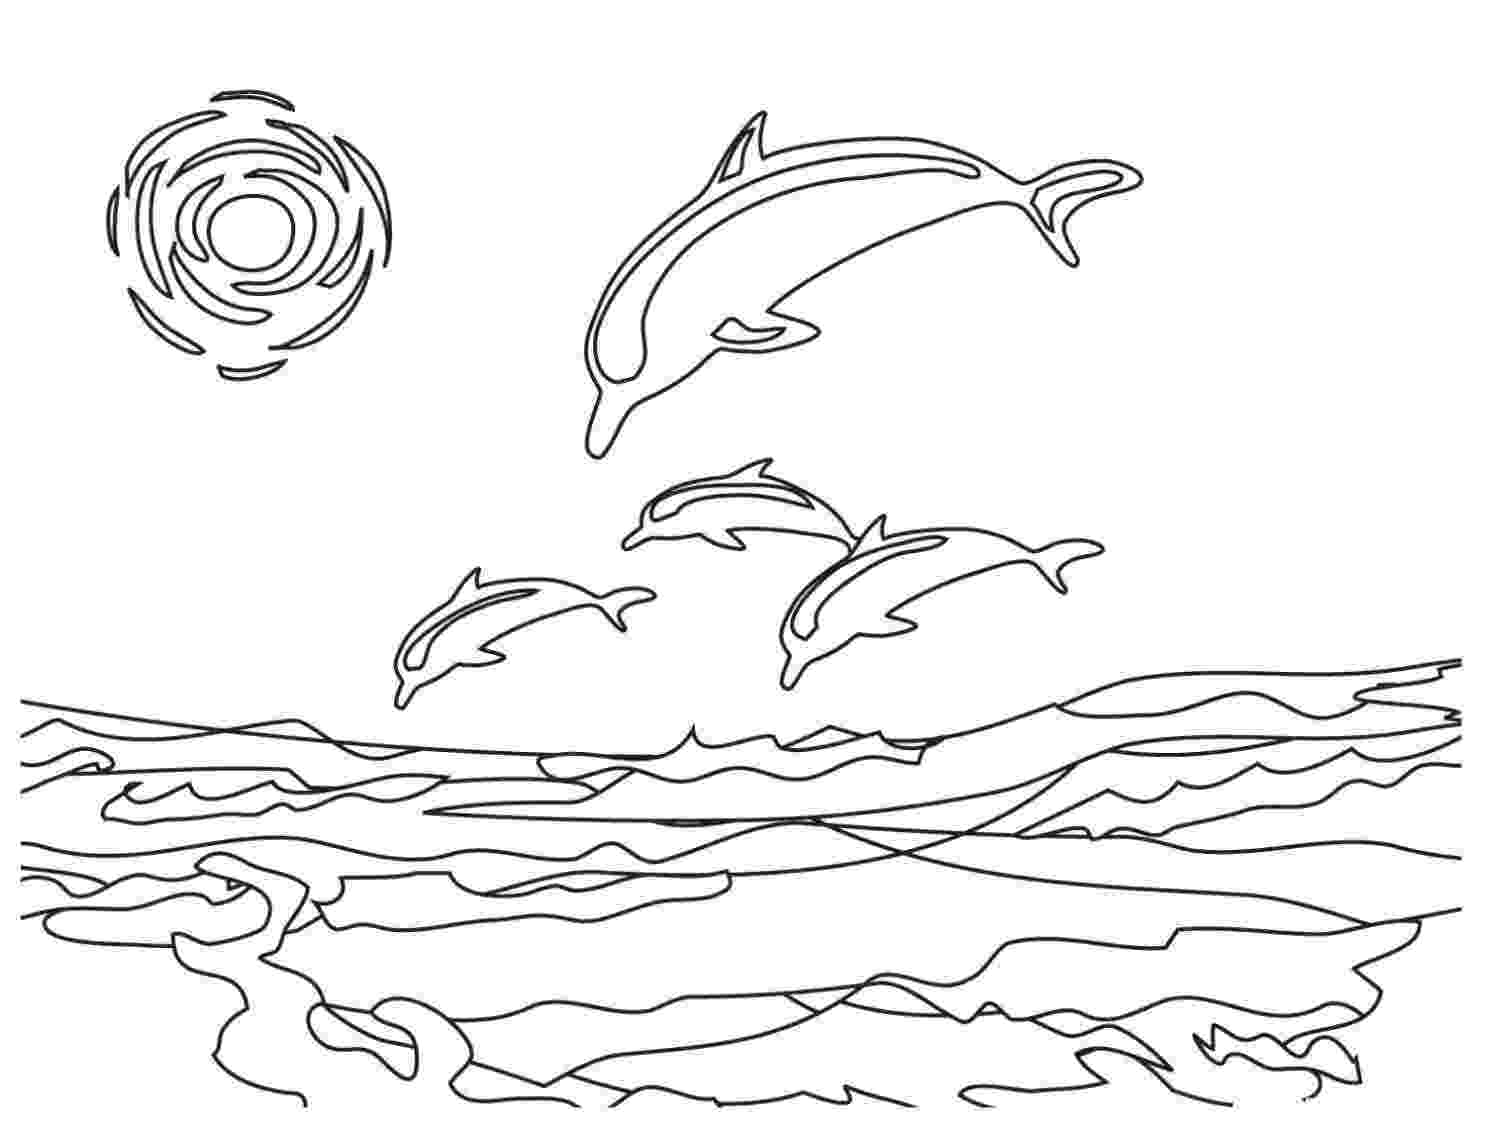 dolphin images for coloring free printable dolphin coloring pages for kids coloring for dolphin images